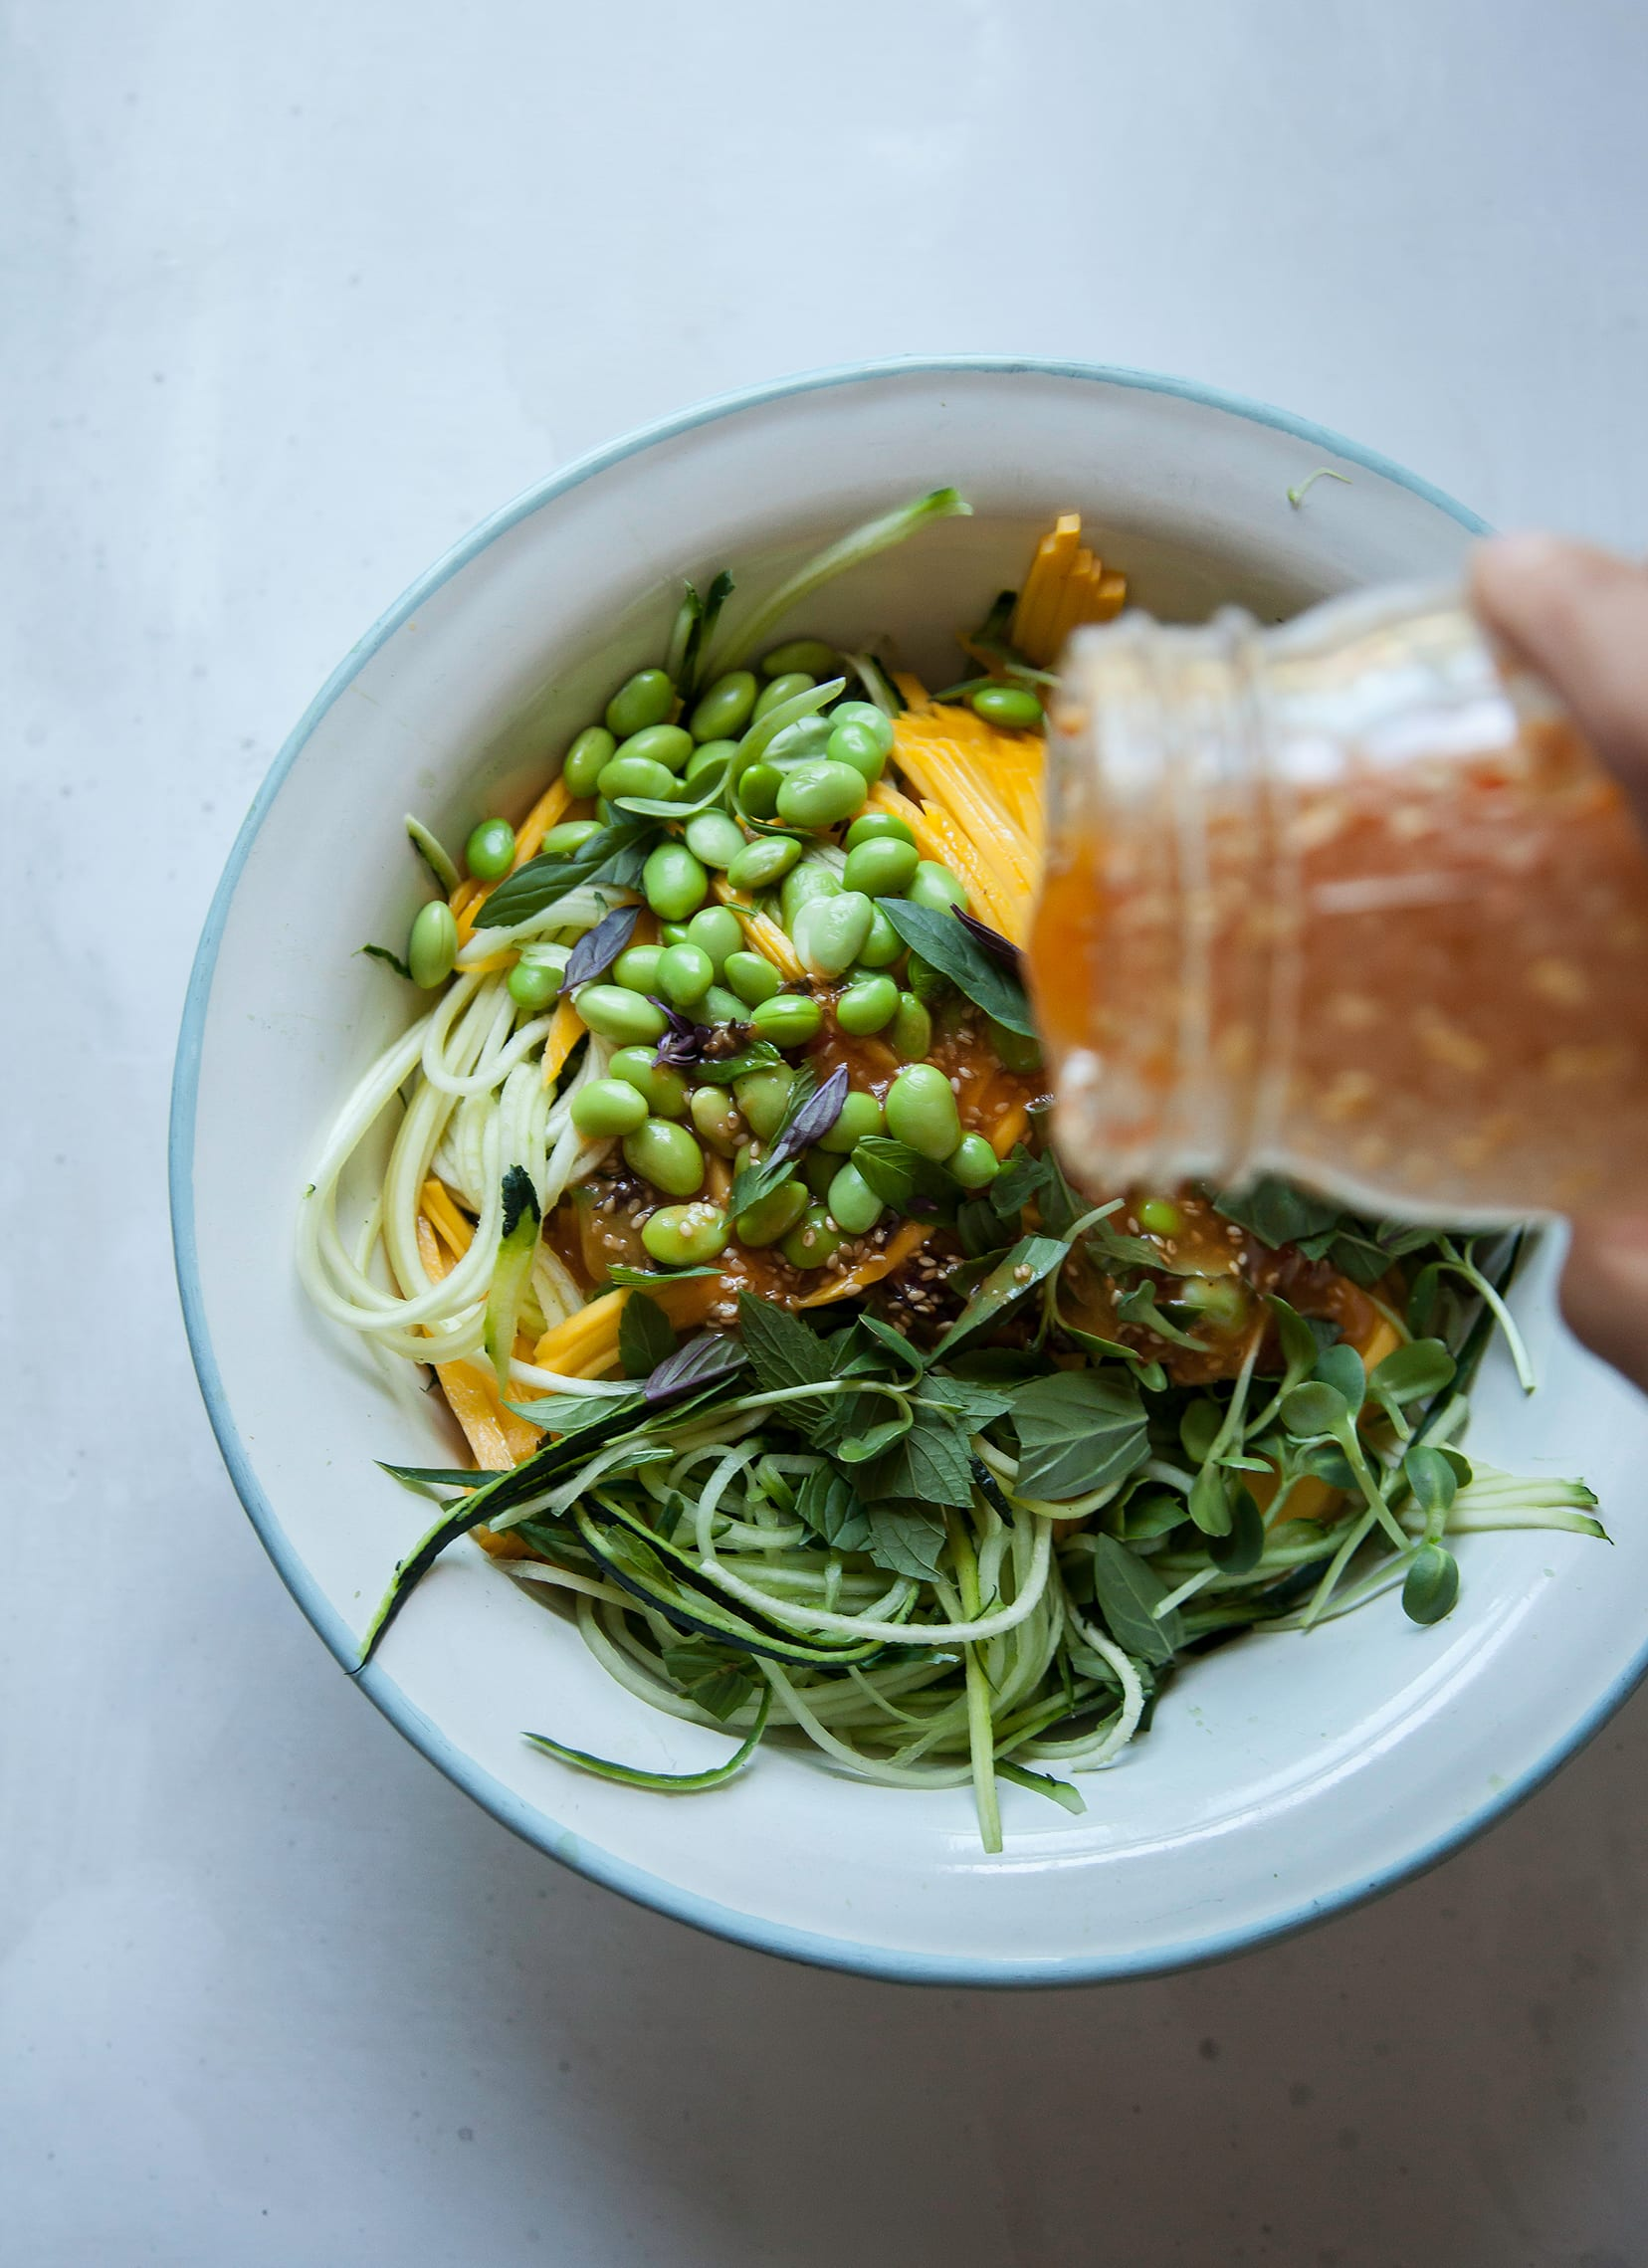 Image shows a hand pouting a light orange dressing over a green vegetable noodle salad with edamame.